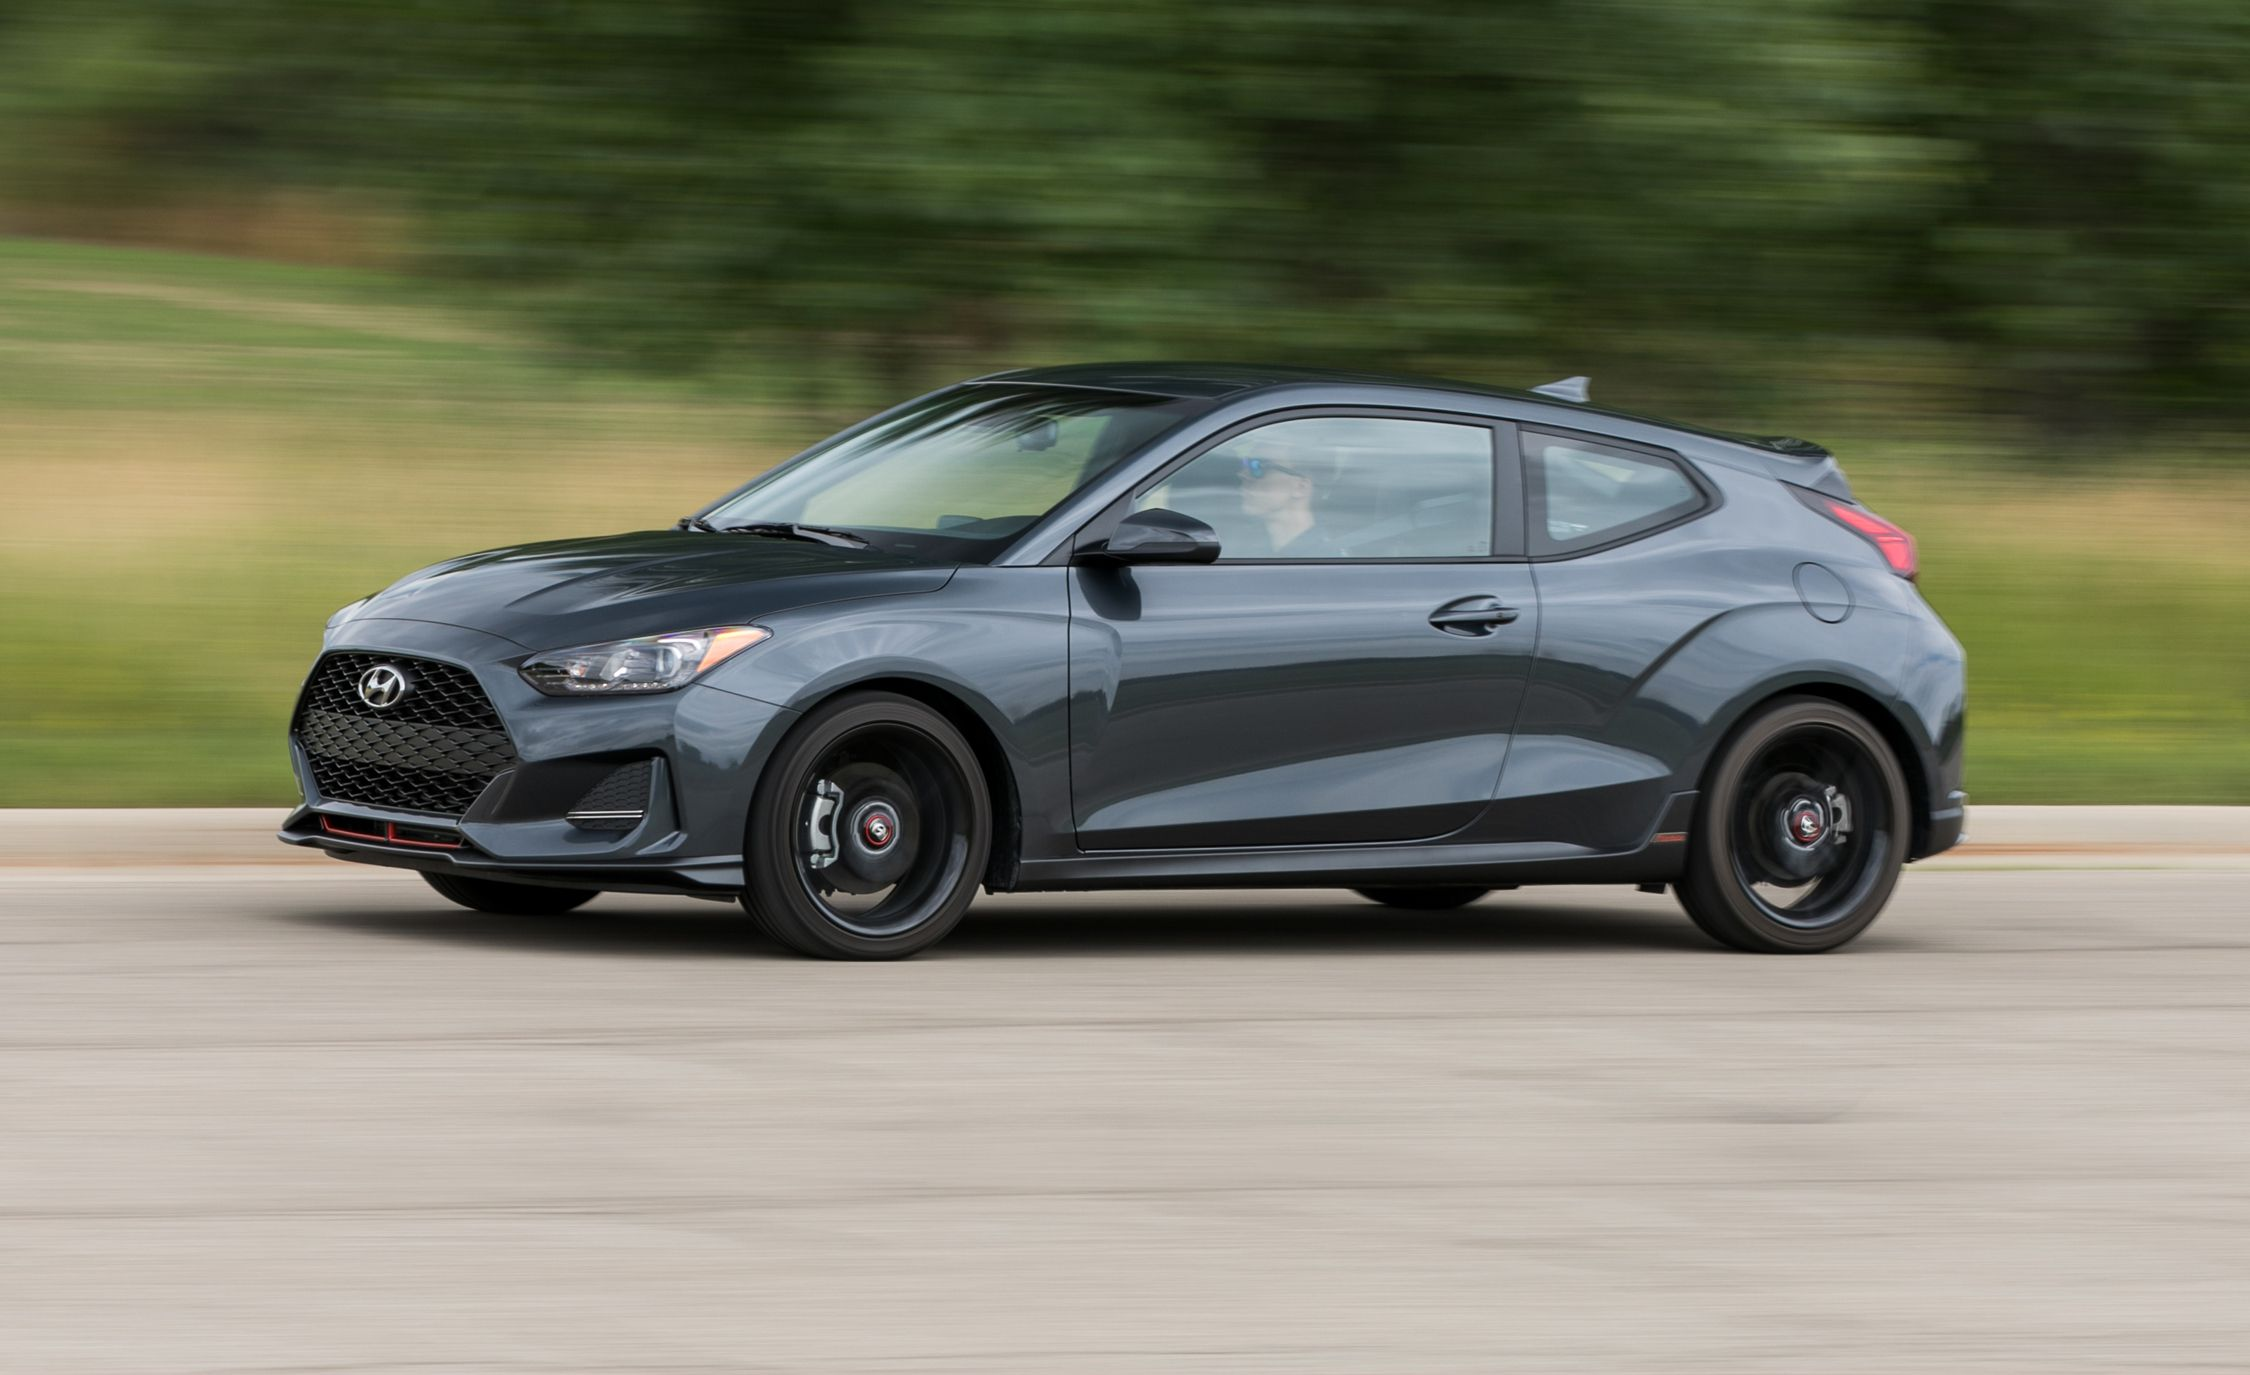 2019 Hyundai Veloster Turbo R-Spec Manual Test: The Price Is Light